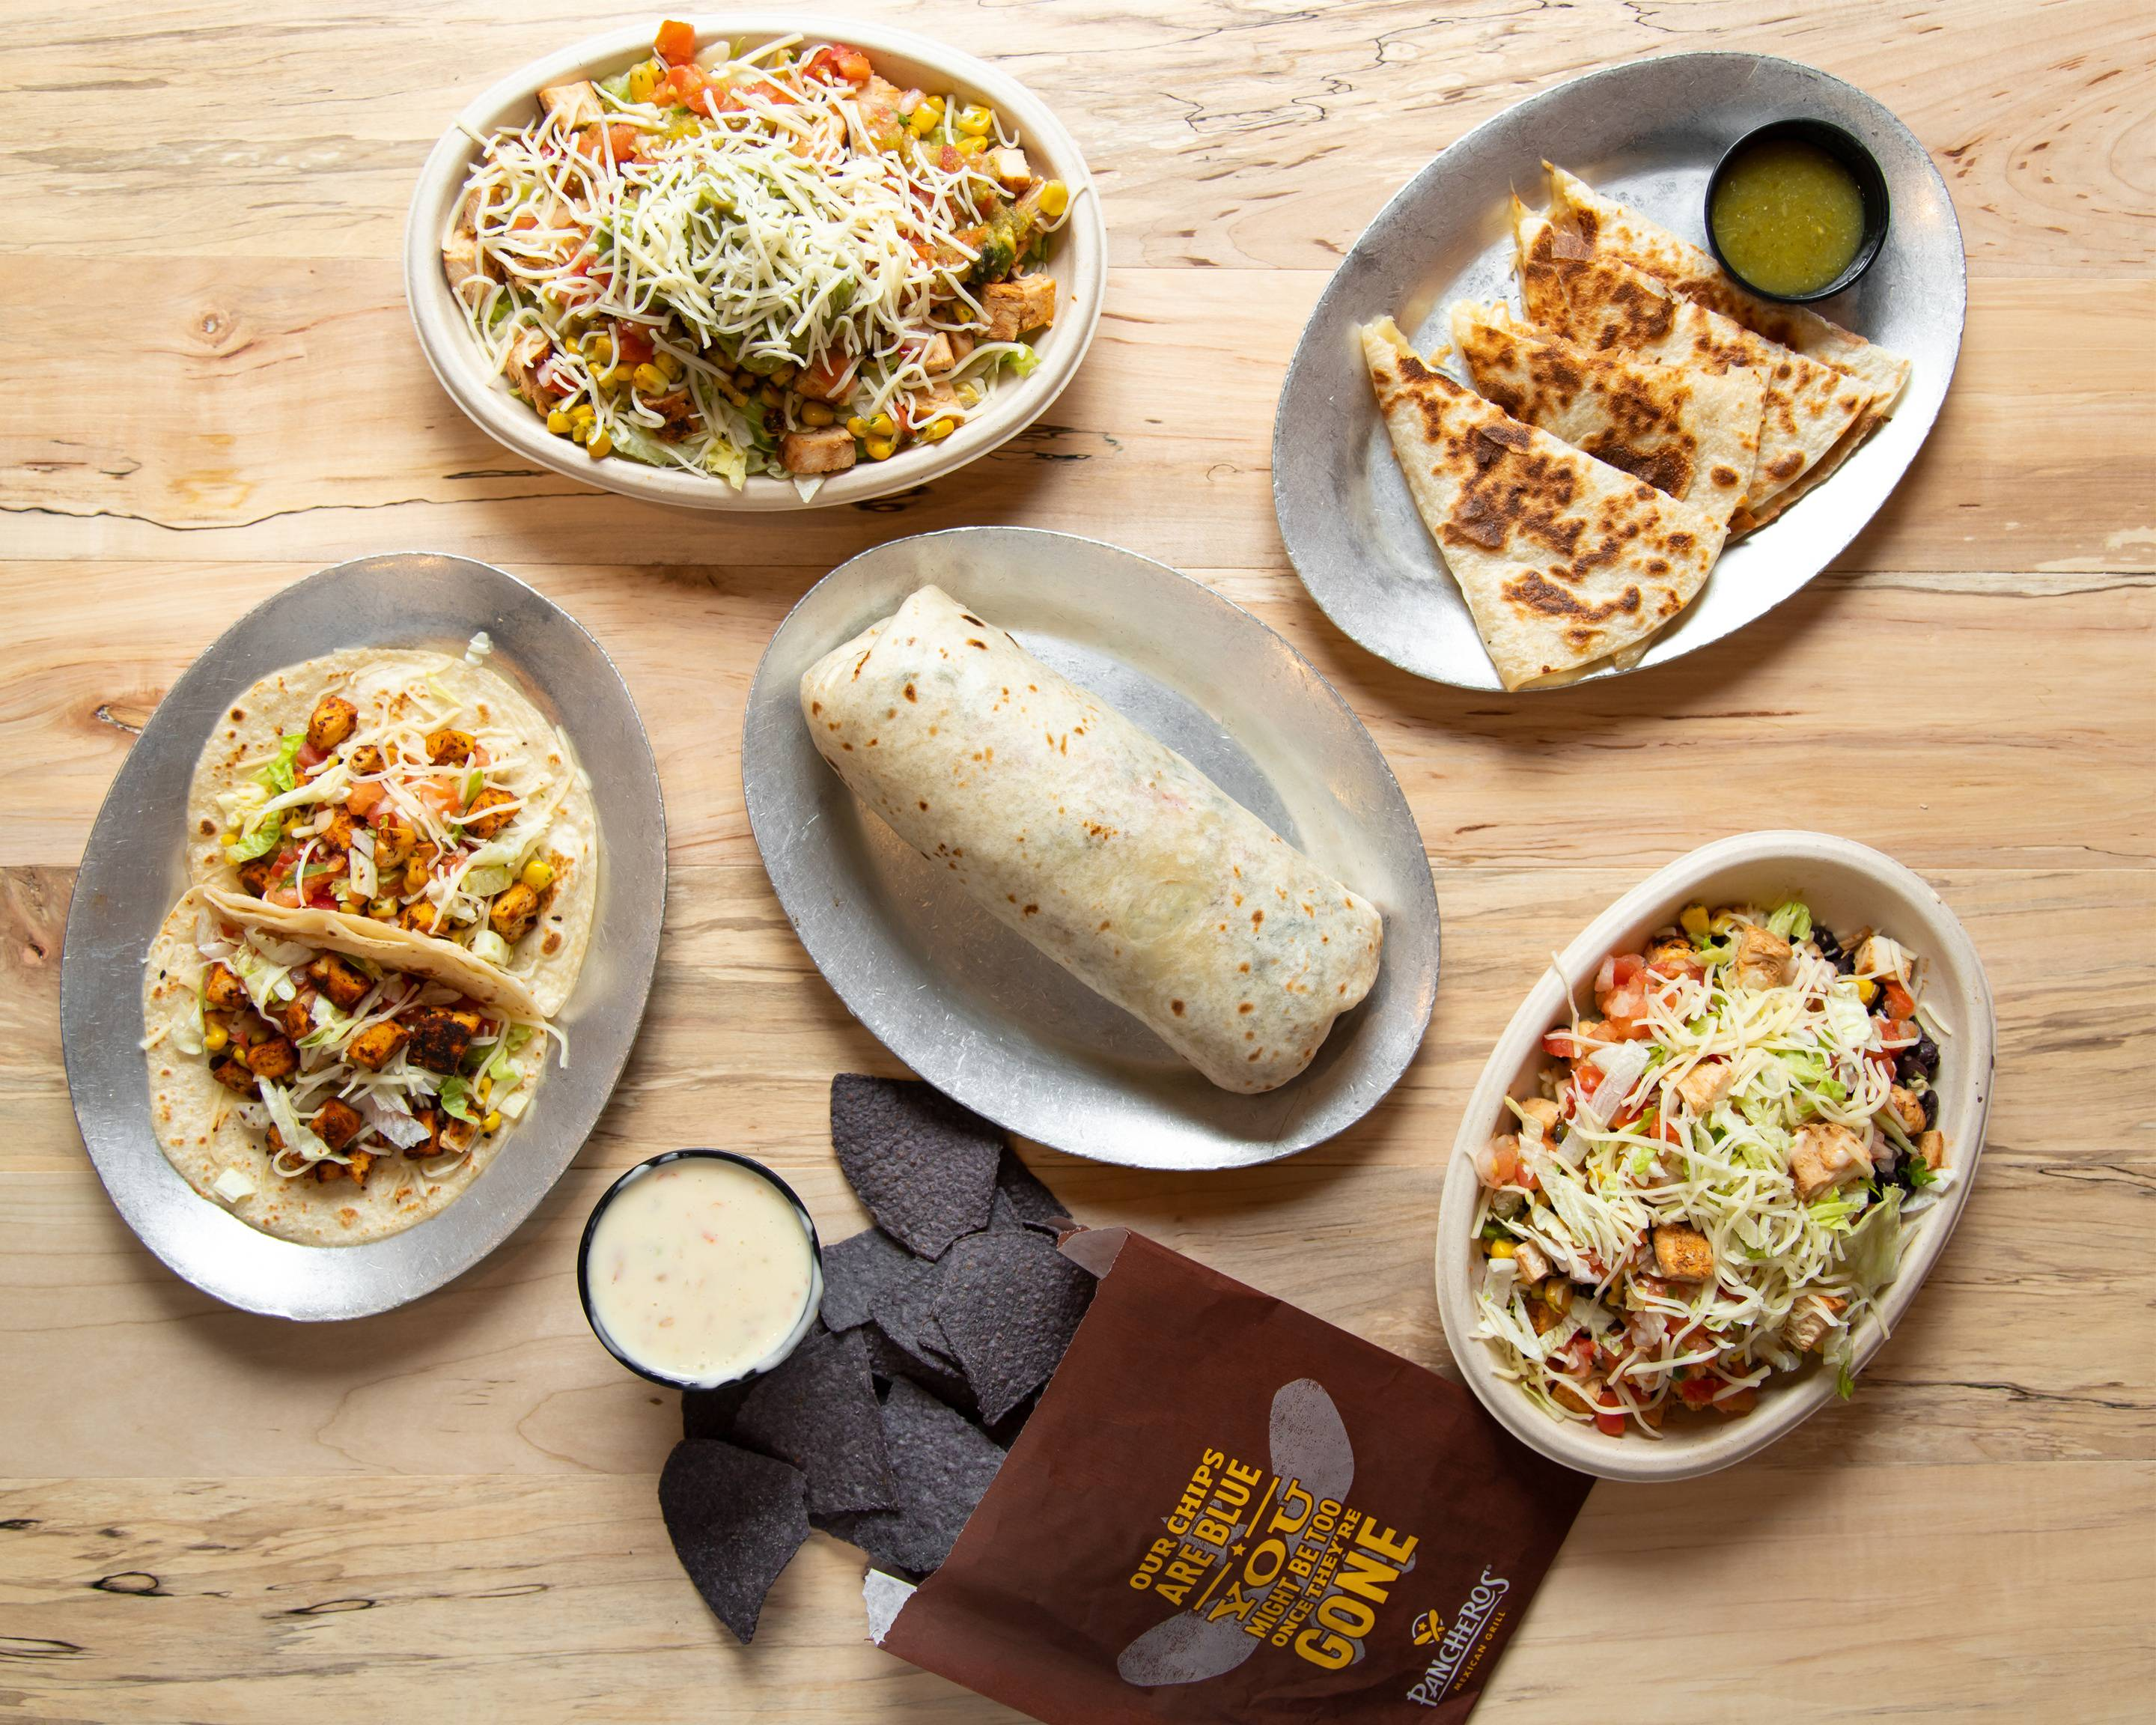 Pancheros Mexican Grill (1310 S. Duff Ave)